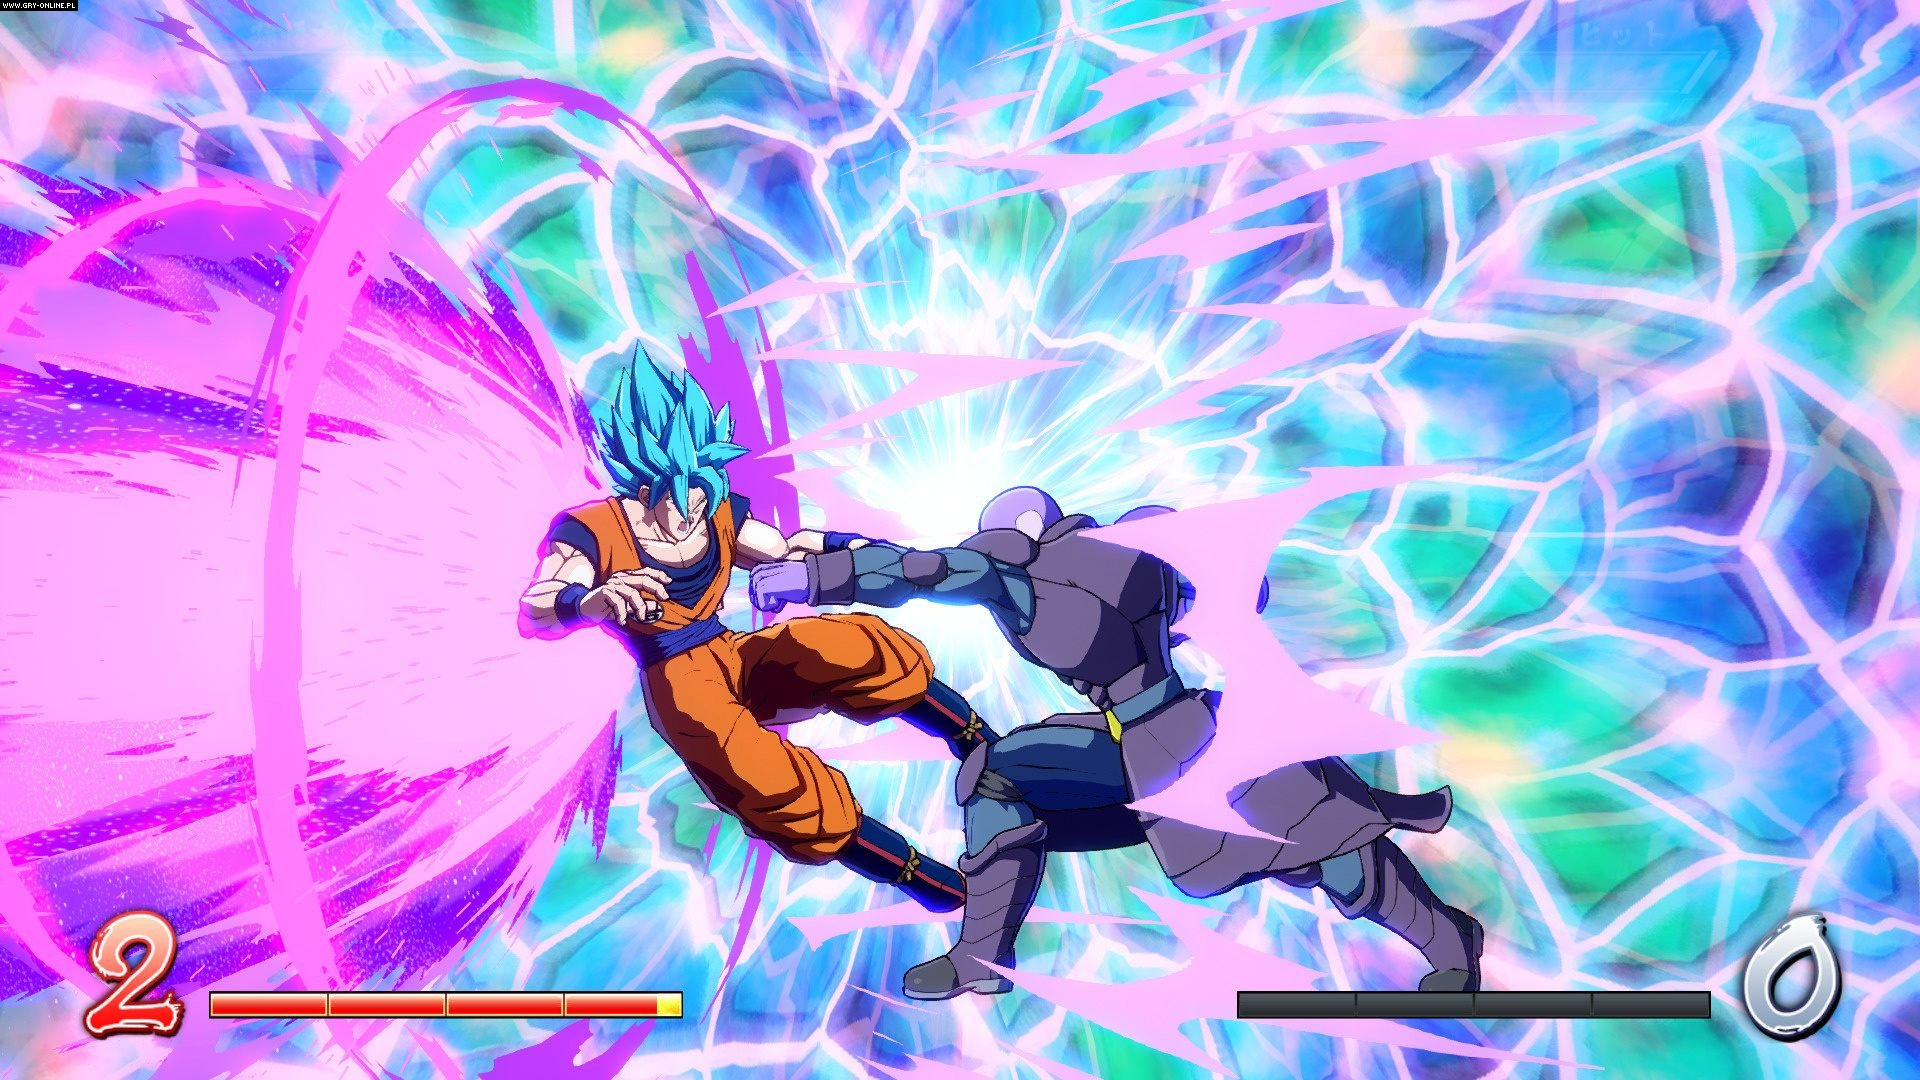 Dragon Ball FighterZ PC, PS4, XONE, Switch Gry Screen 119/230, Arc System Works, Bandai Namco Entertainment